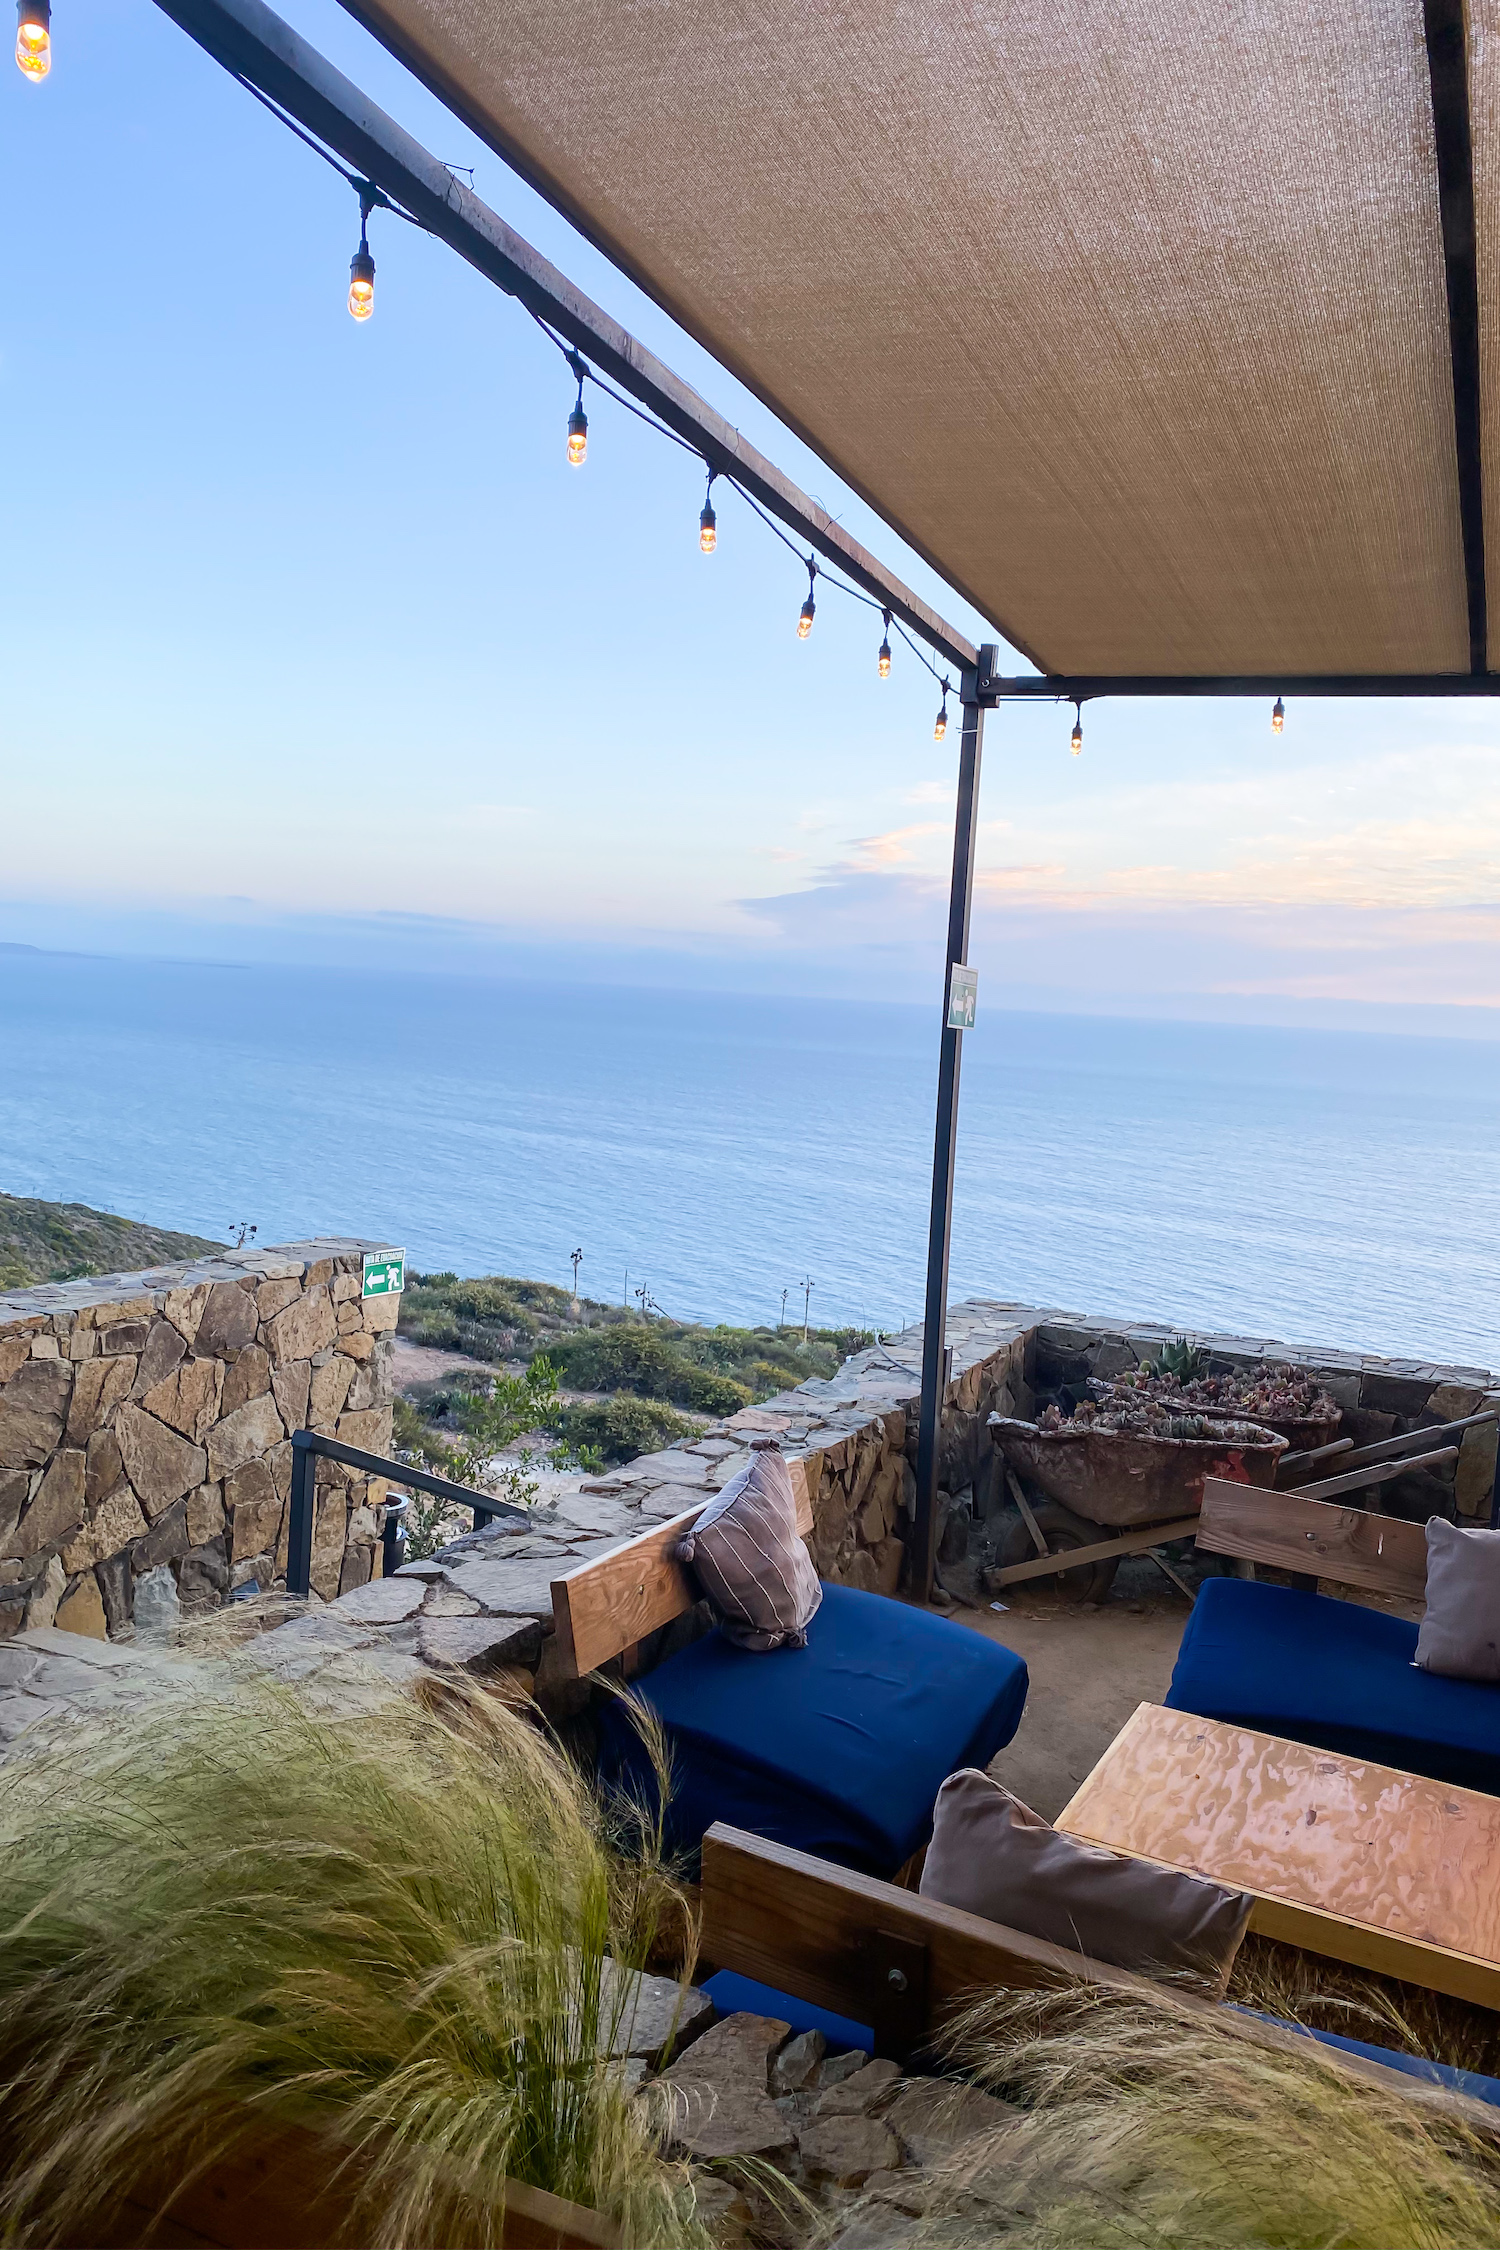 Valle de Guadalupe travel diary